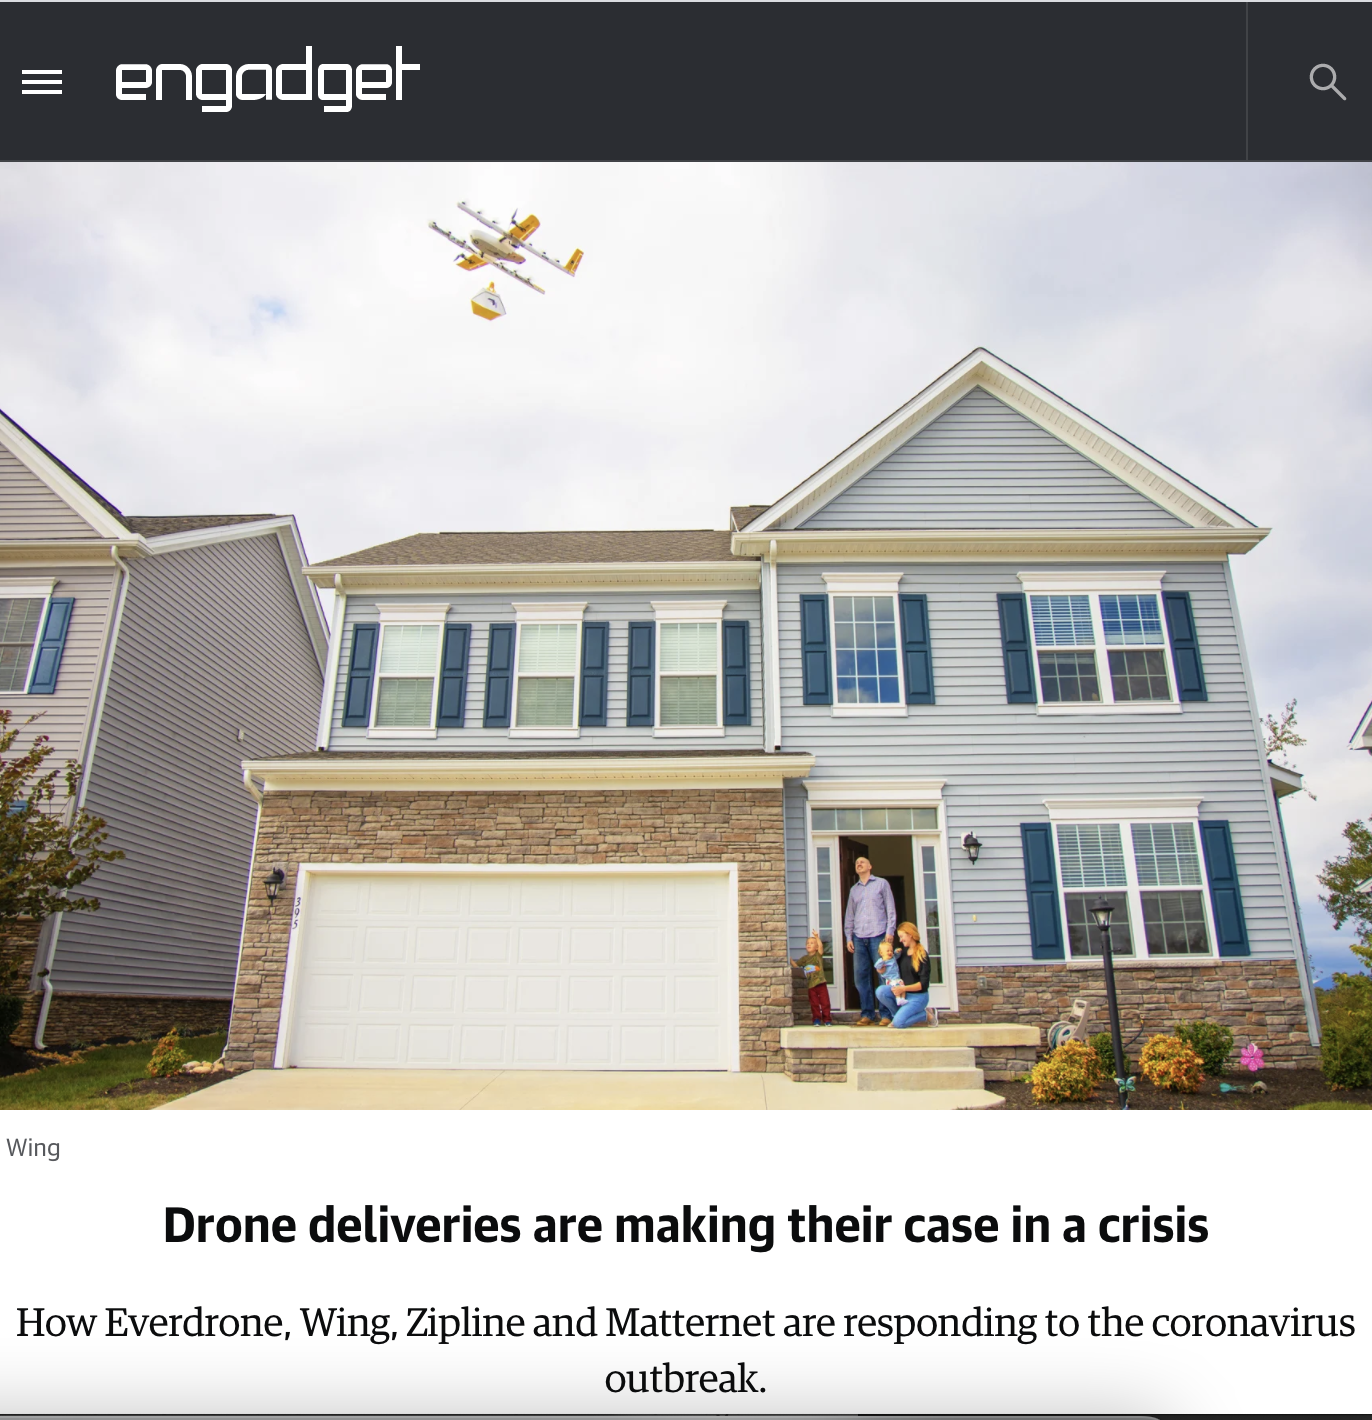 Drone deliveries are making their case in a crisis